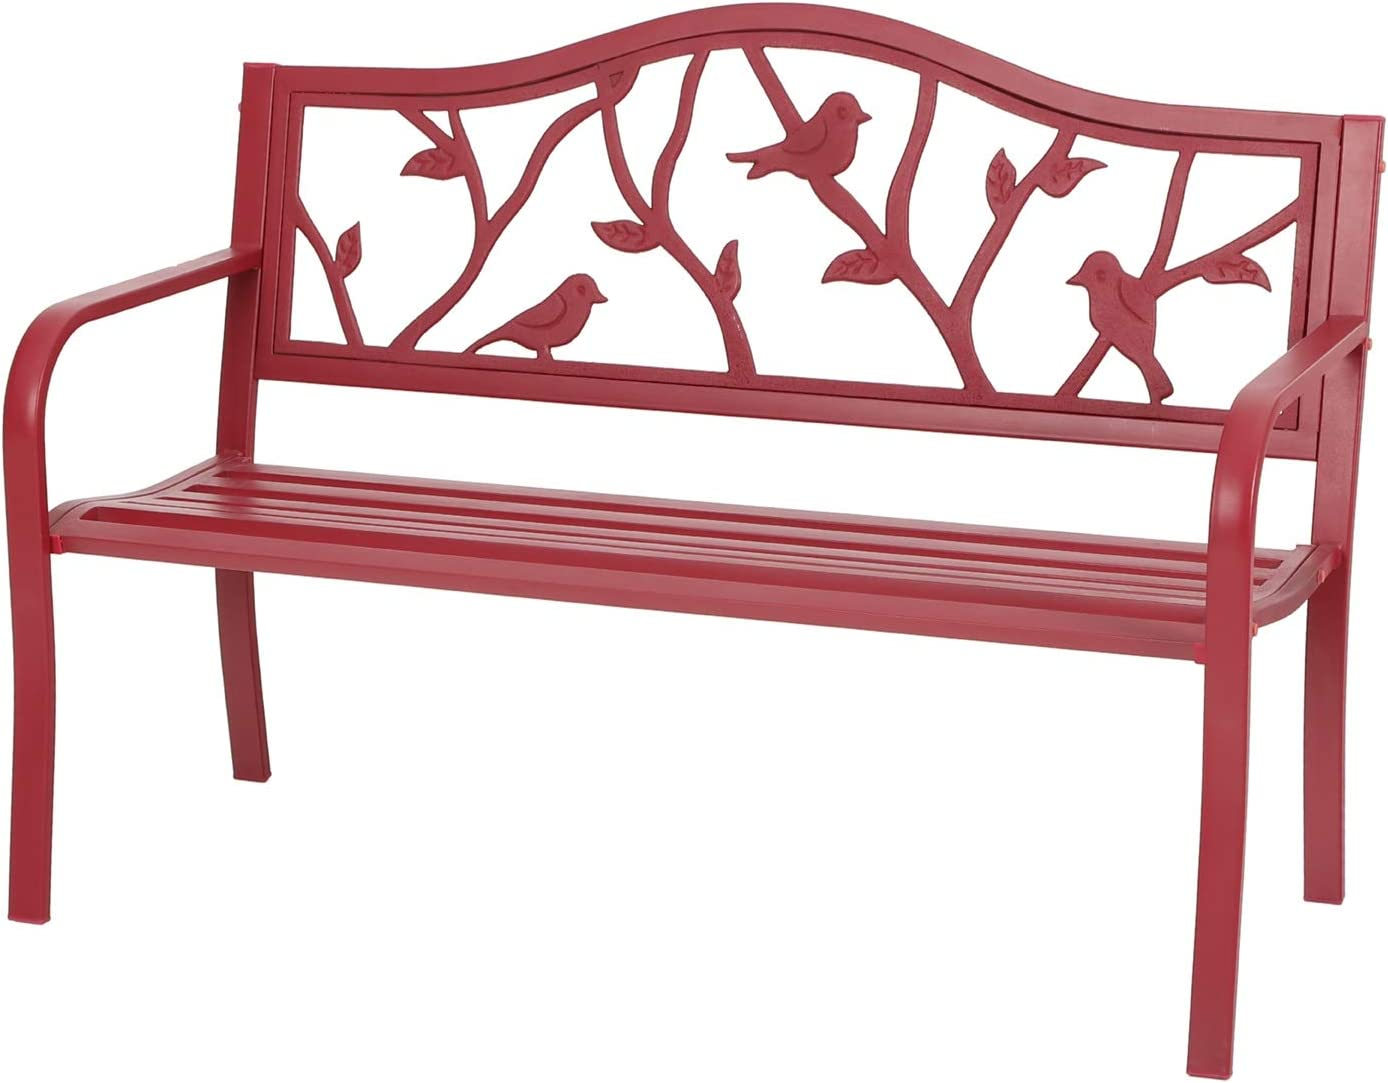 """Sophia & William Outdoor Patio Metal Park Bench Red, Steel Frame Bench with Backrest and Armrests for Porch, Patio, Garden, Lawn, Balcony, Backyard and Indoor, 50.4""""Wx23.5""""D x35.0""""H"""